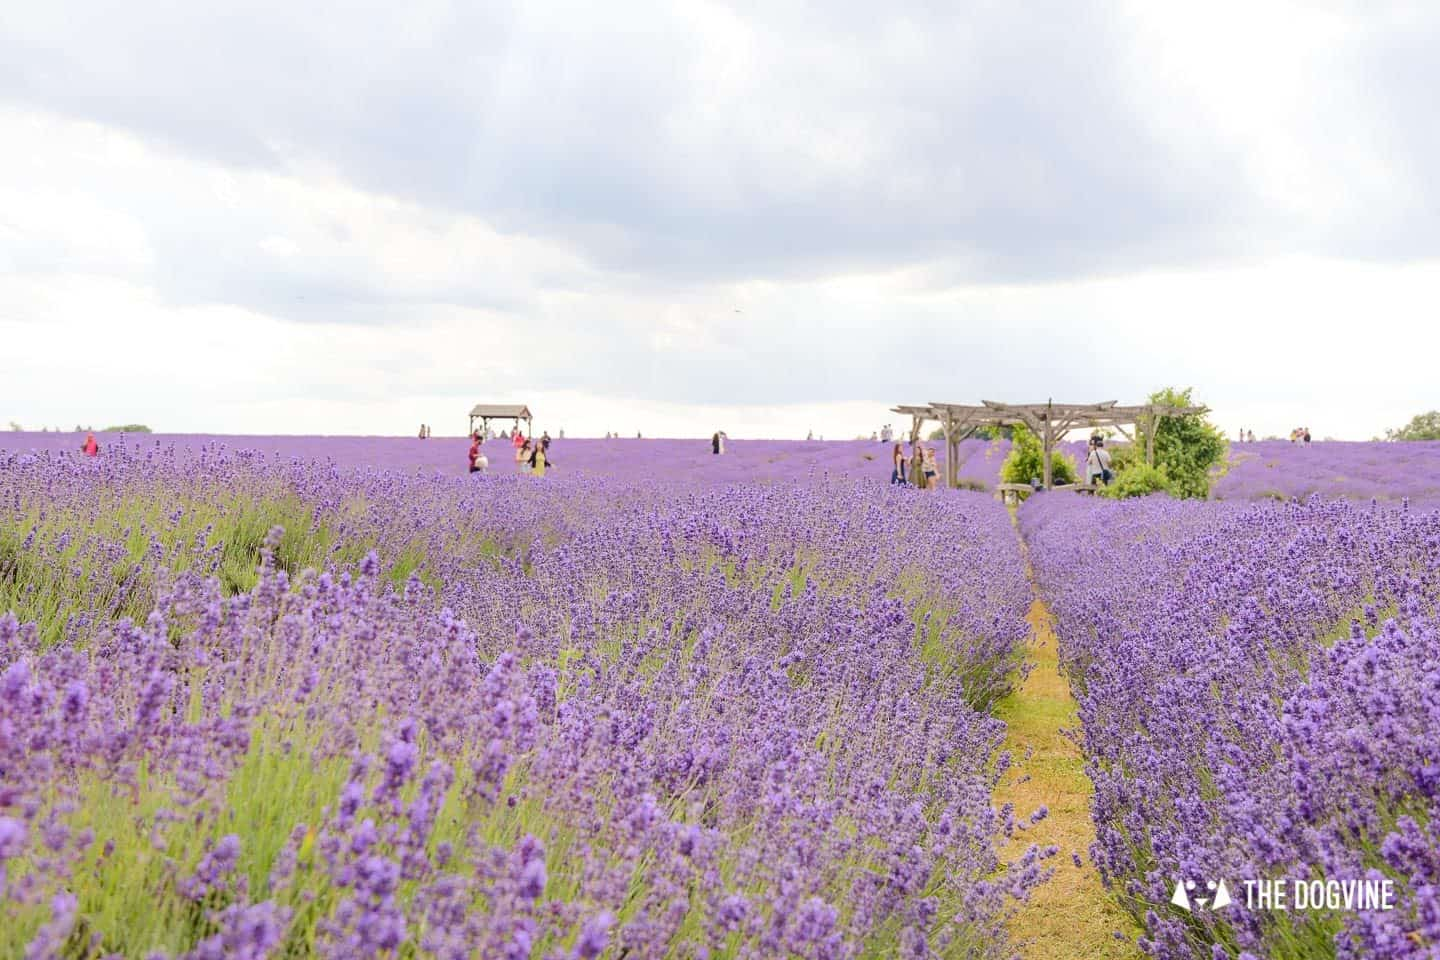 Mayfield Lavender Farm - People in the Lavender Field